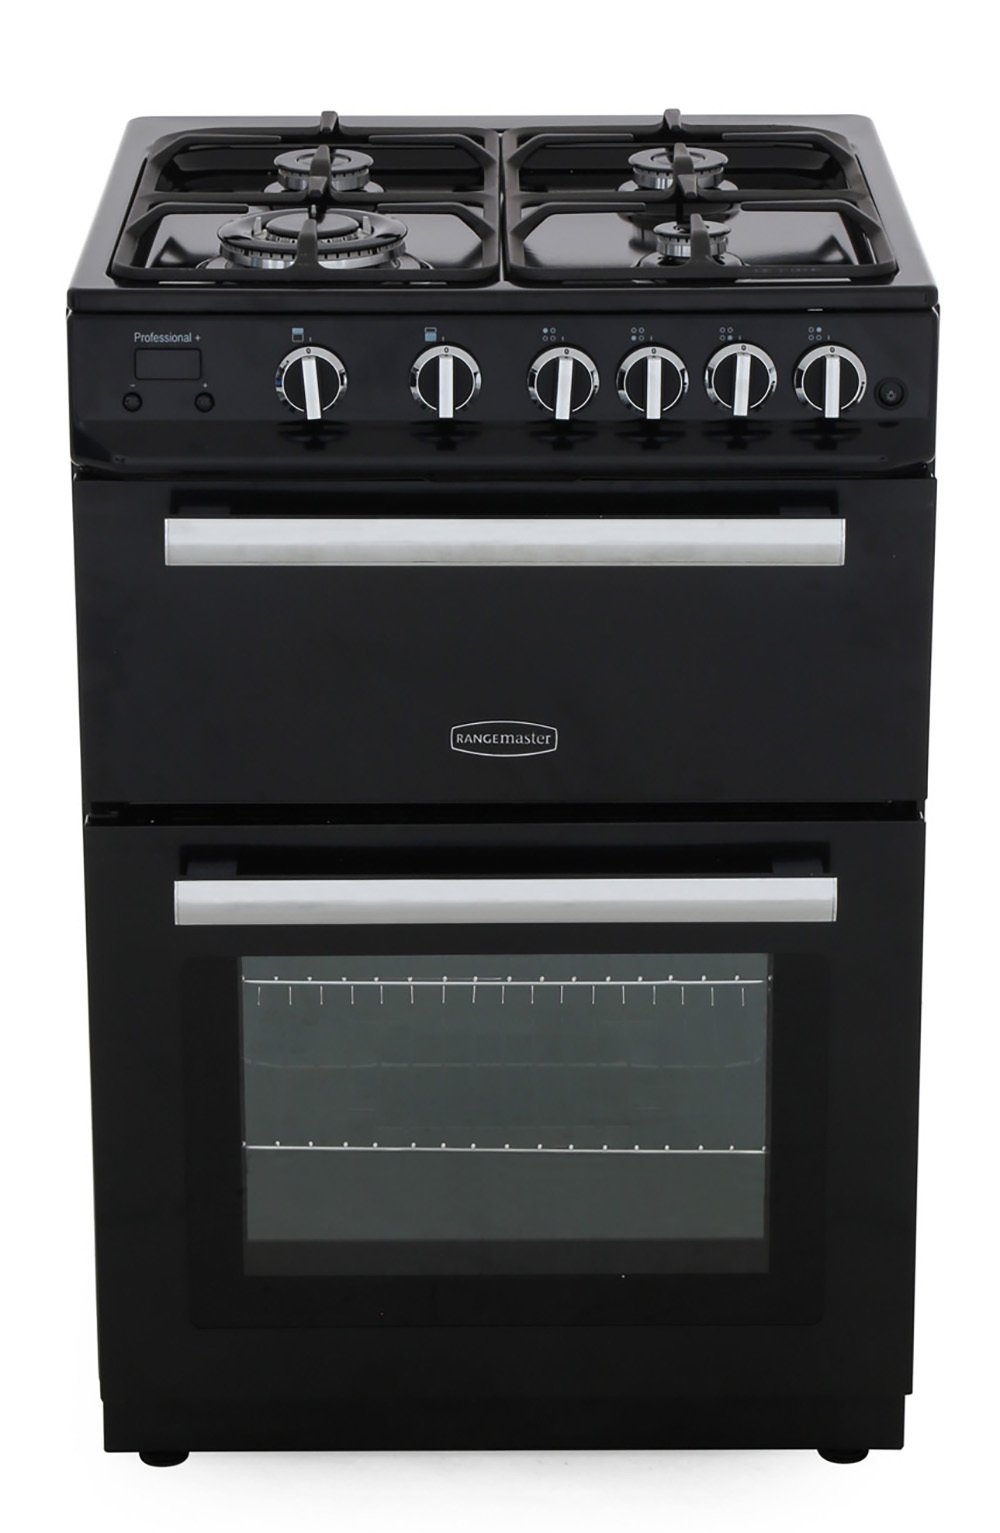 Rangemaster PROP60NGFBL/C Professional Plus 60 NG Black with Chrome Trim Gas Cooker with Double Oven